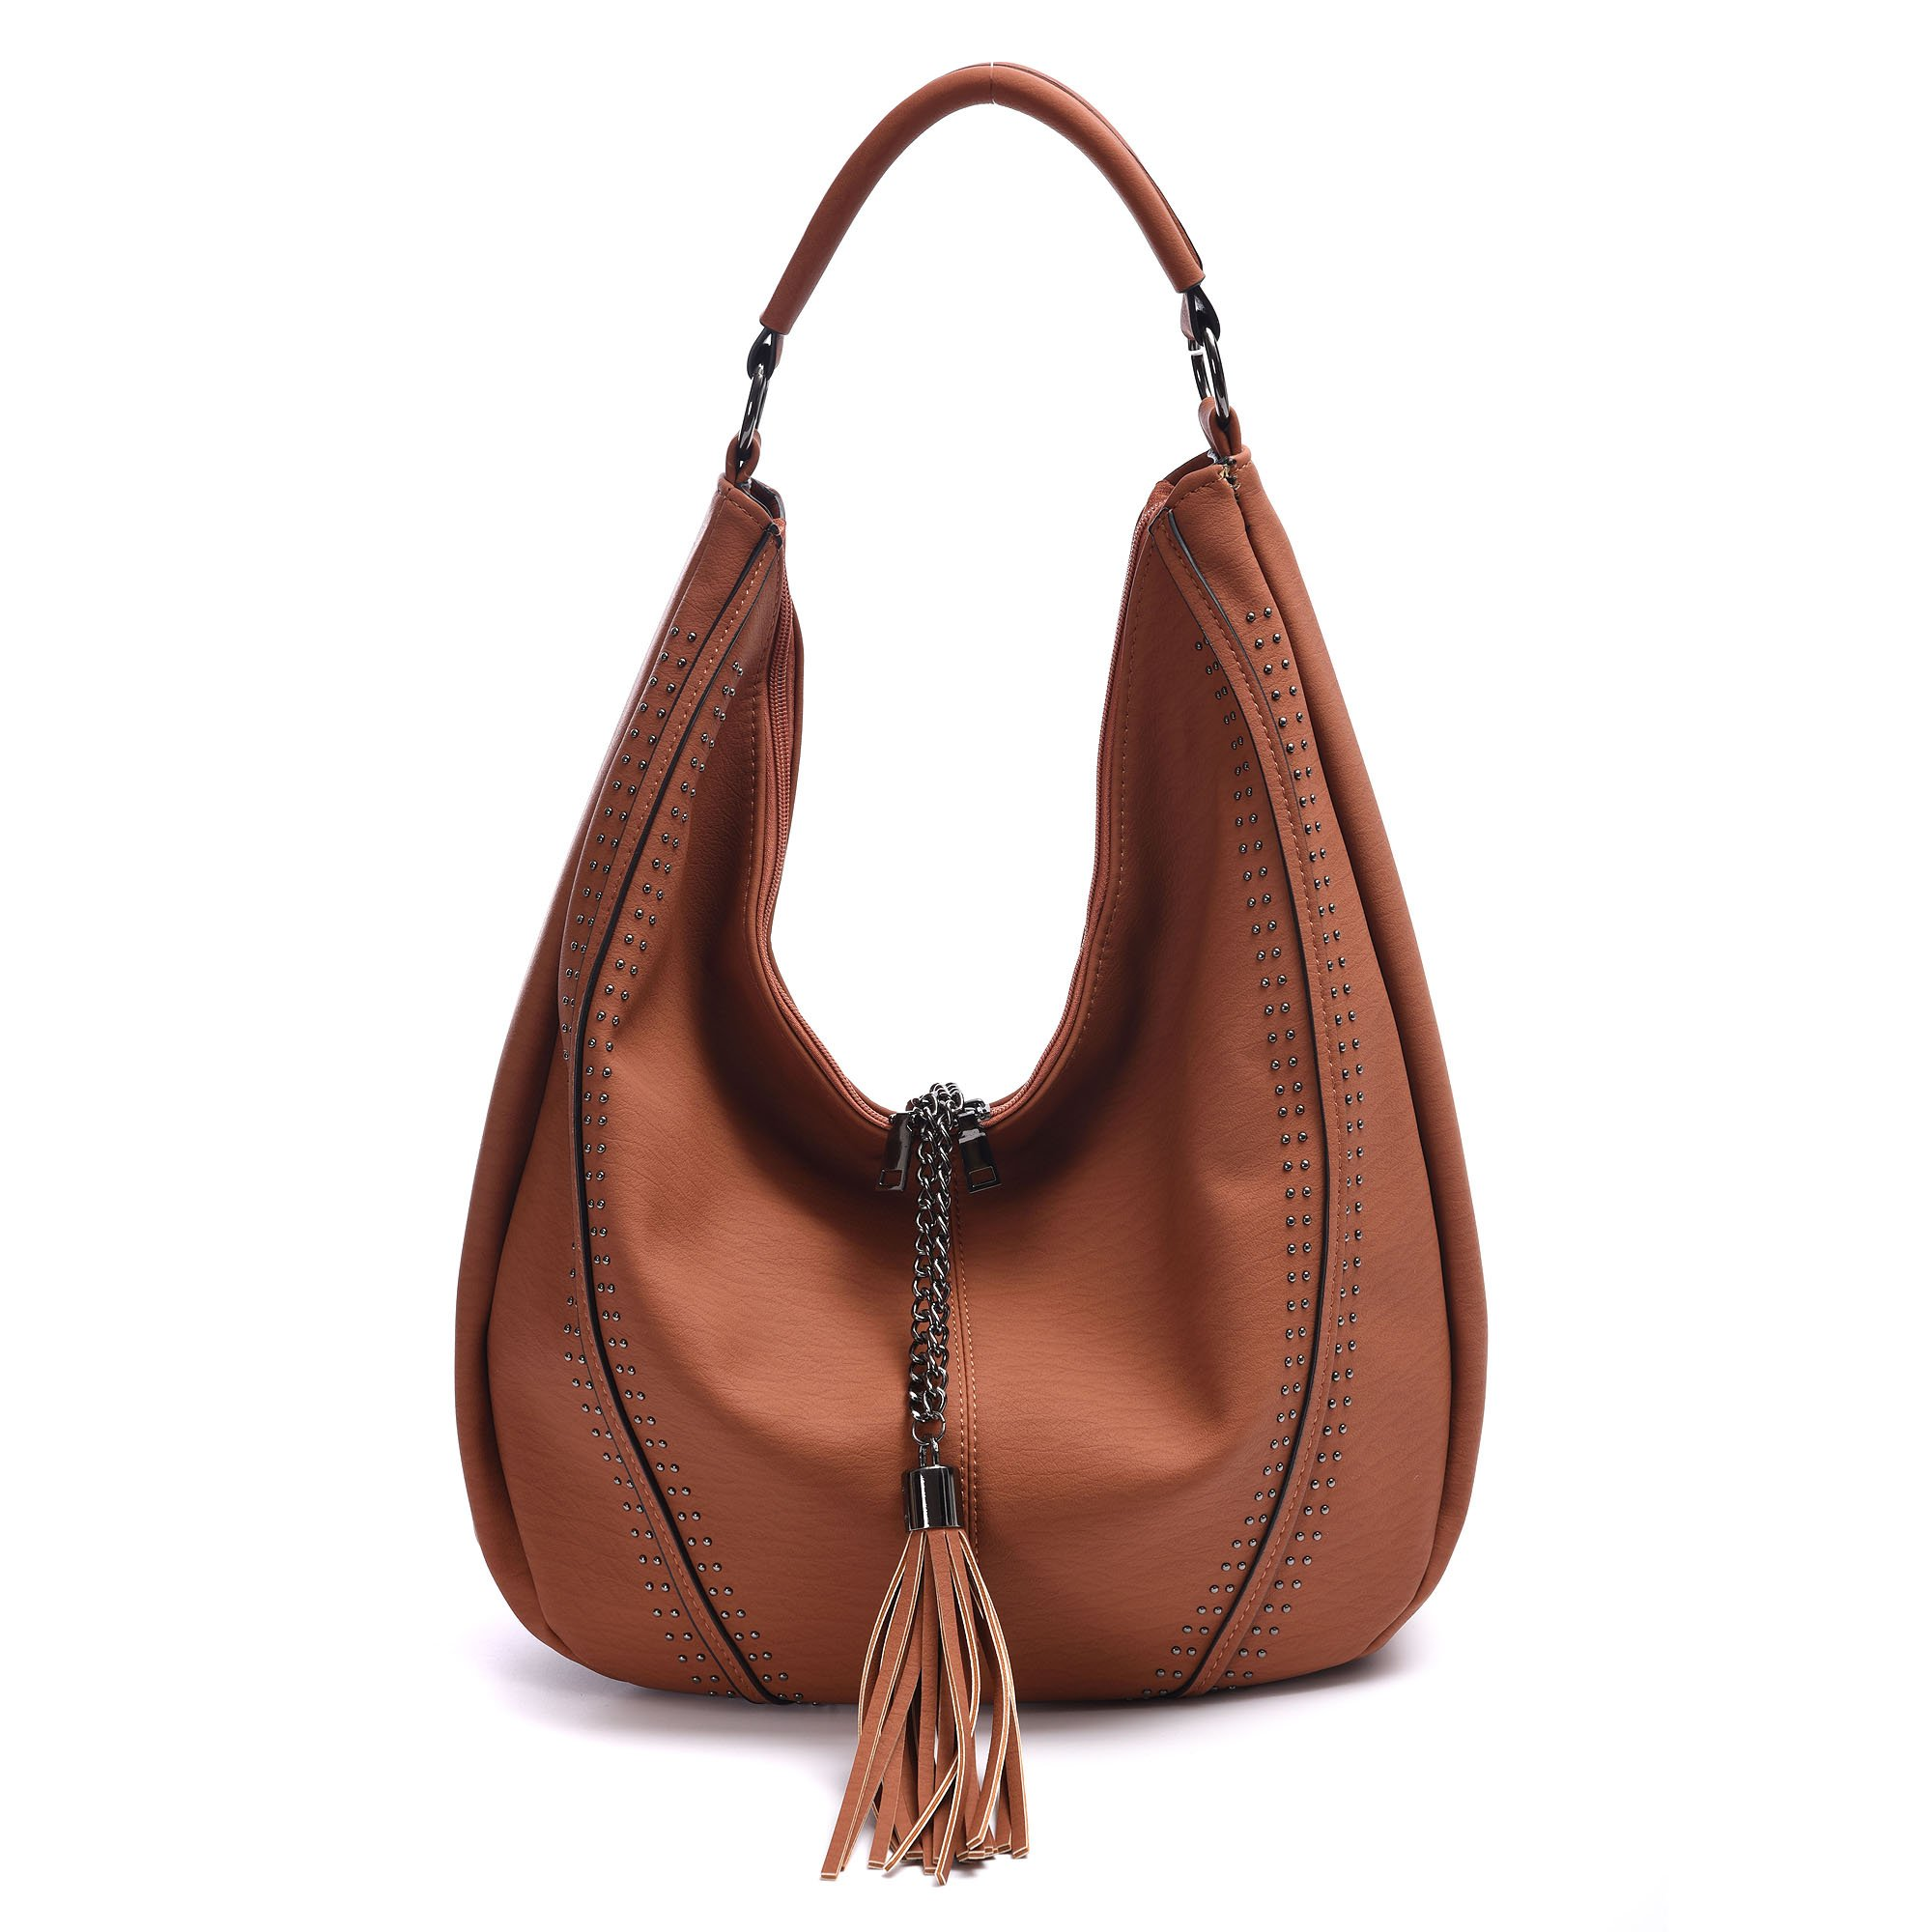 Handbags for Women, Hobo Shoulder Bags Of PU Leather Large Compacity Tote Purses With Tassel Decoration (Brown)